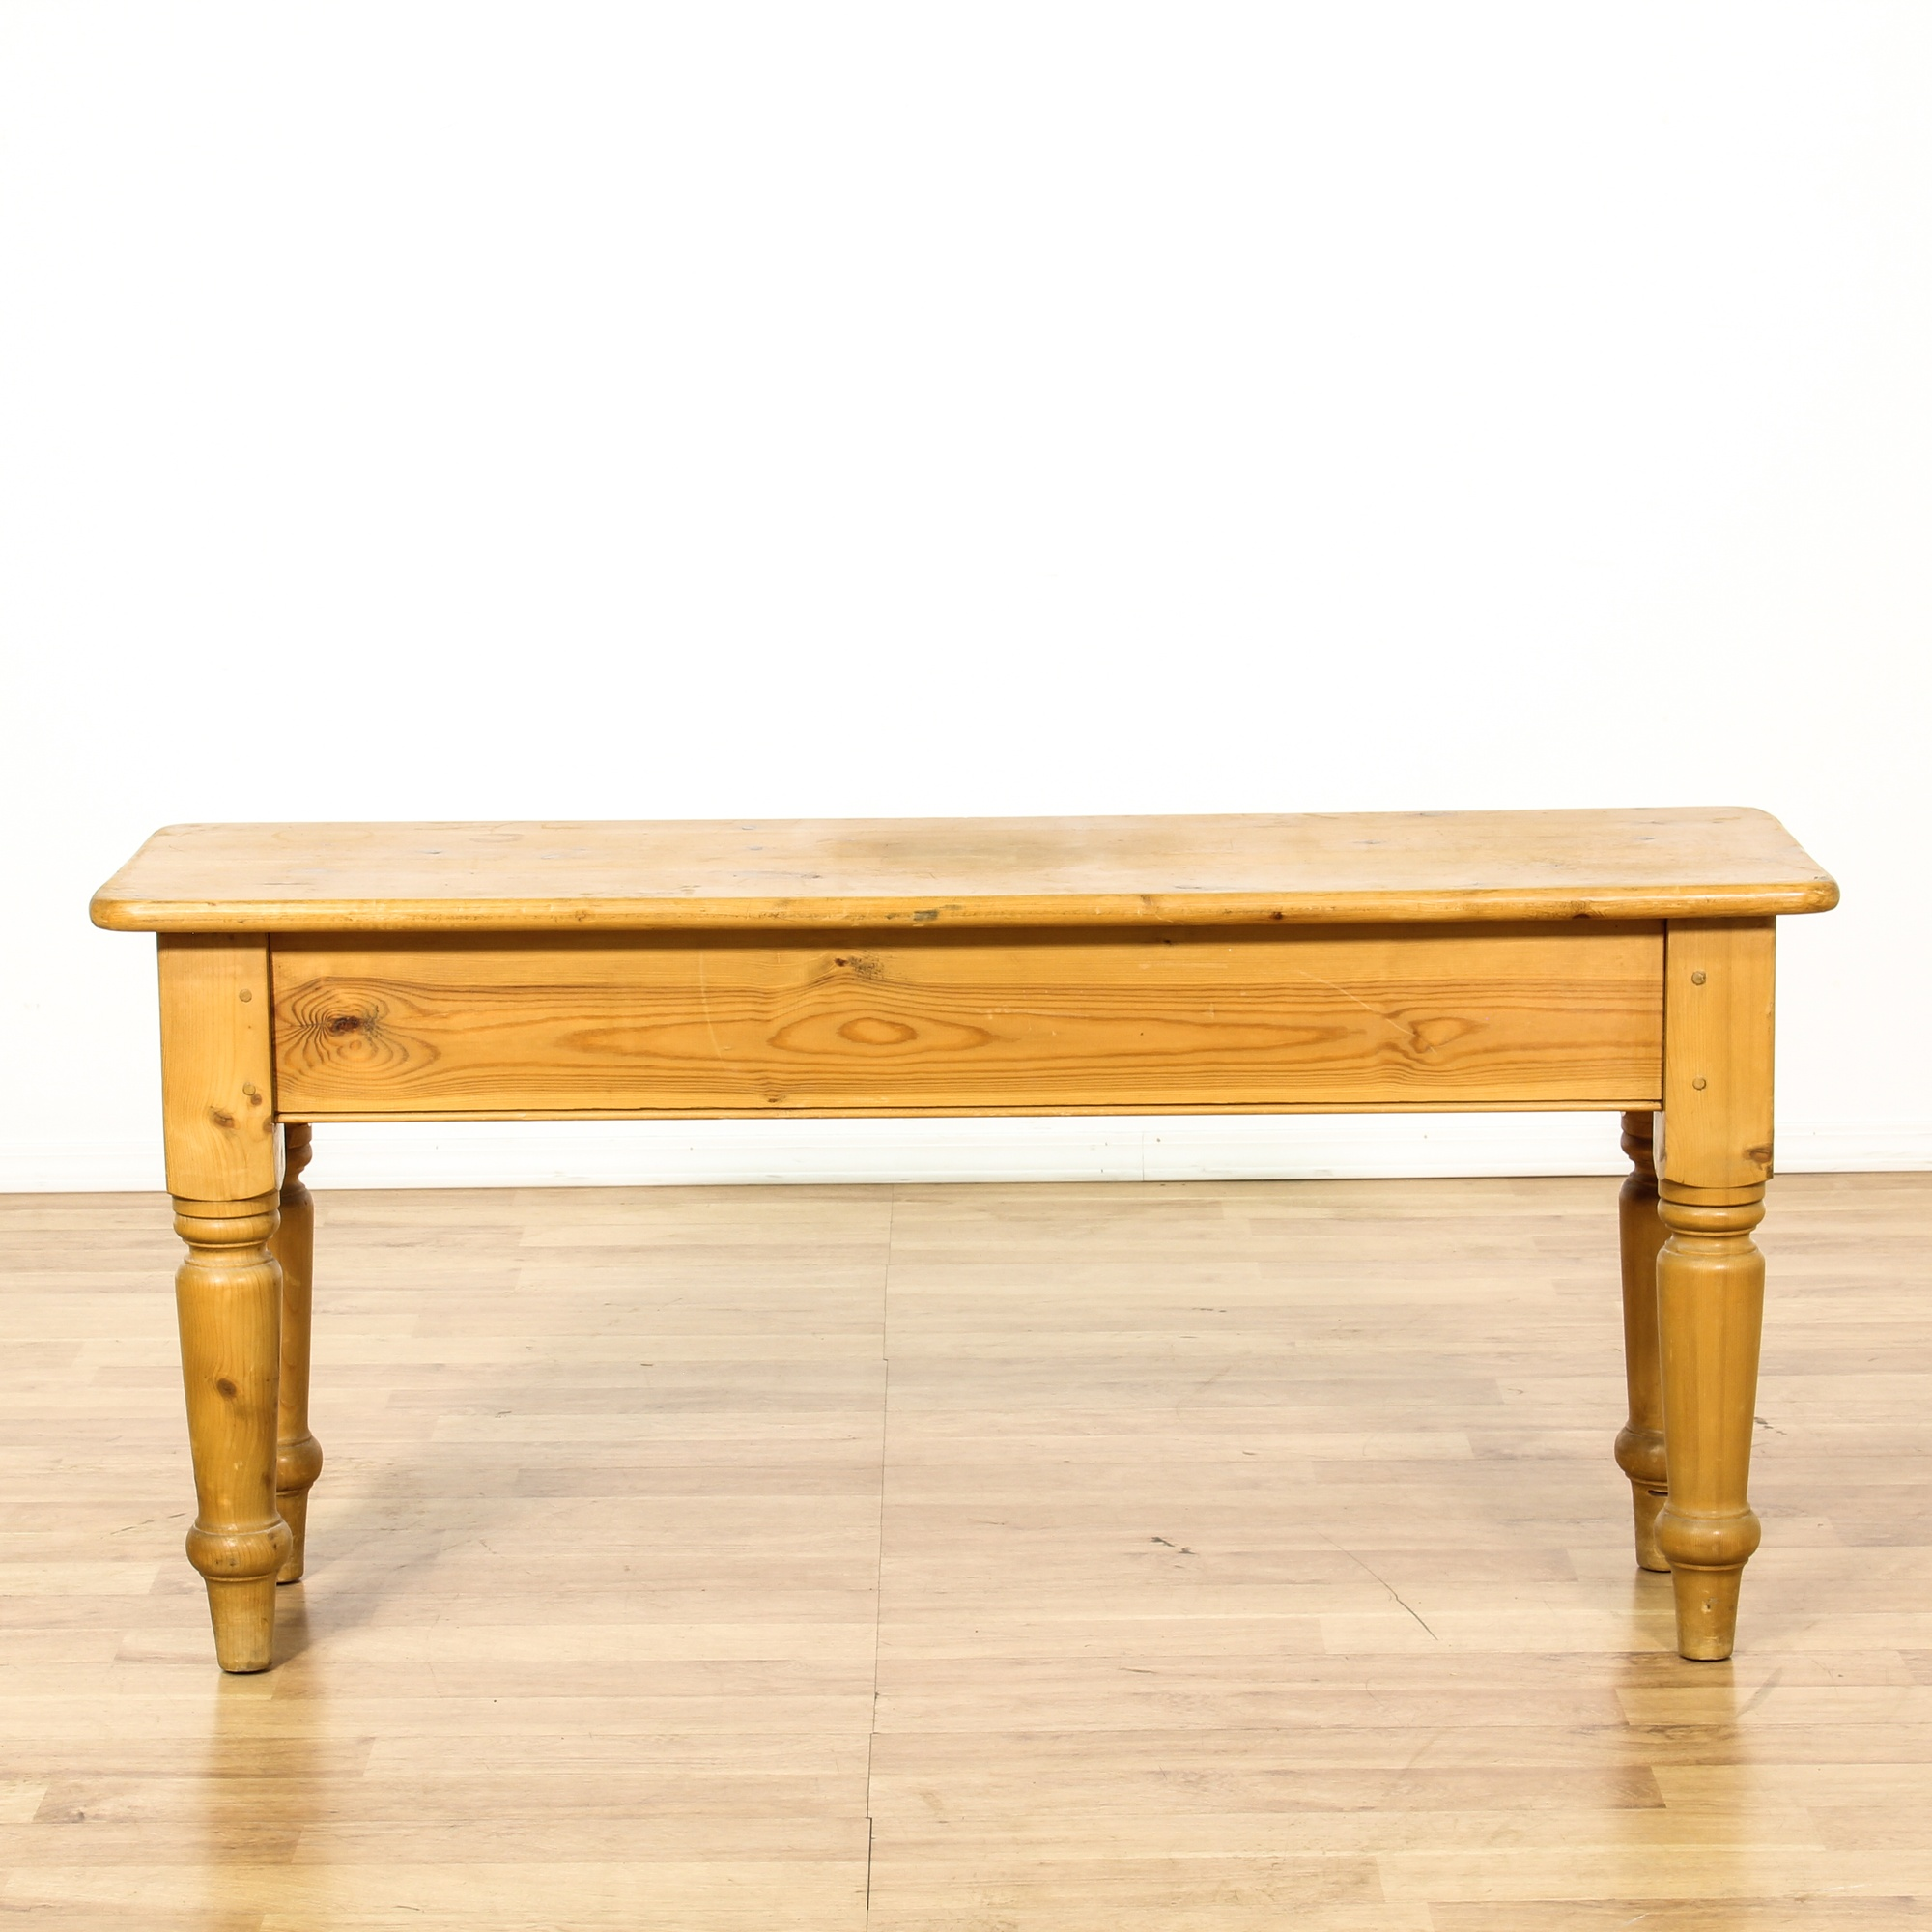 Country pine 2 drawer console sofa table loveseat vintage furniture san diego los angeles - Pine sofa table with drawers ...